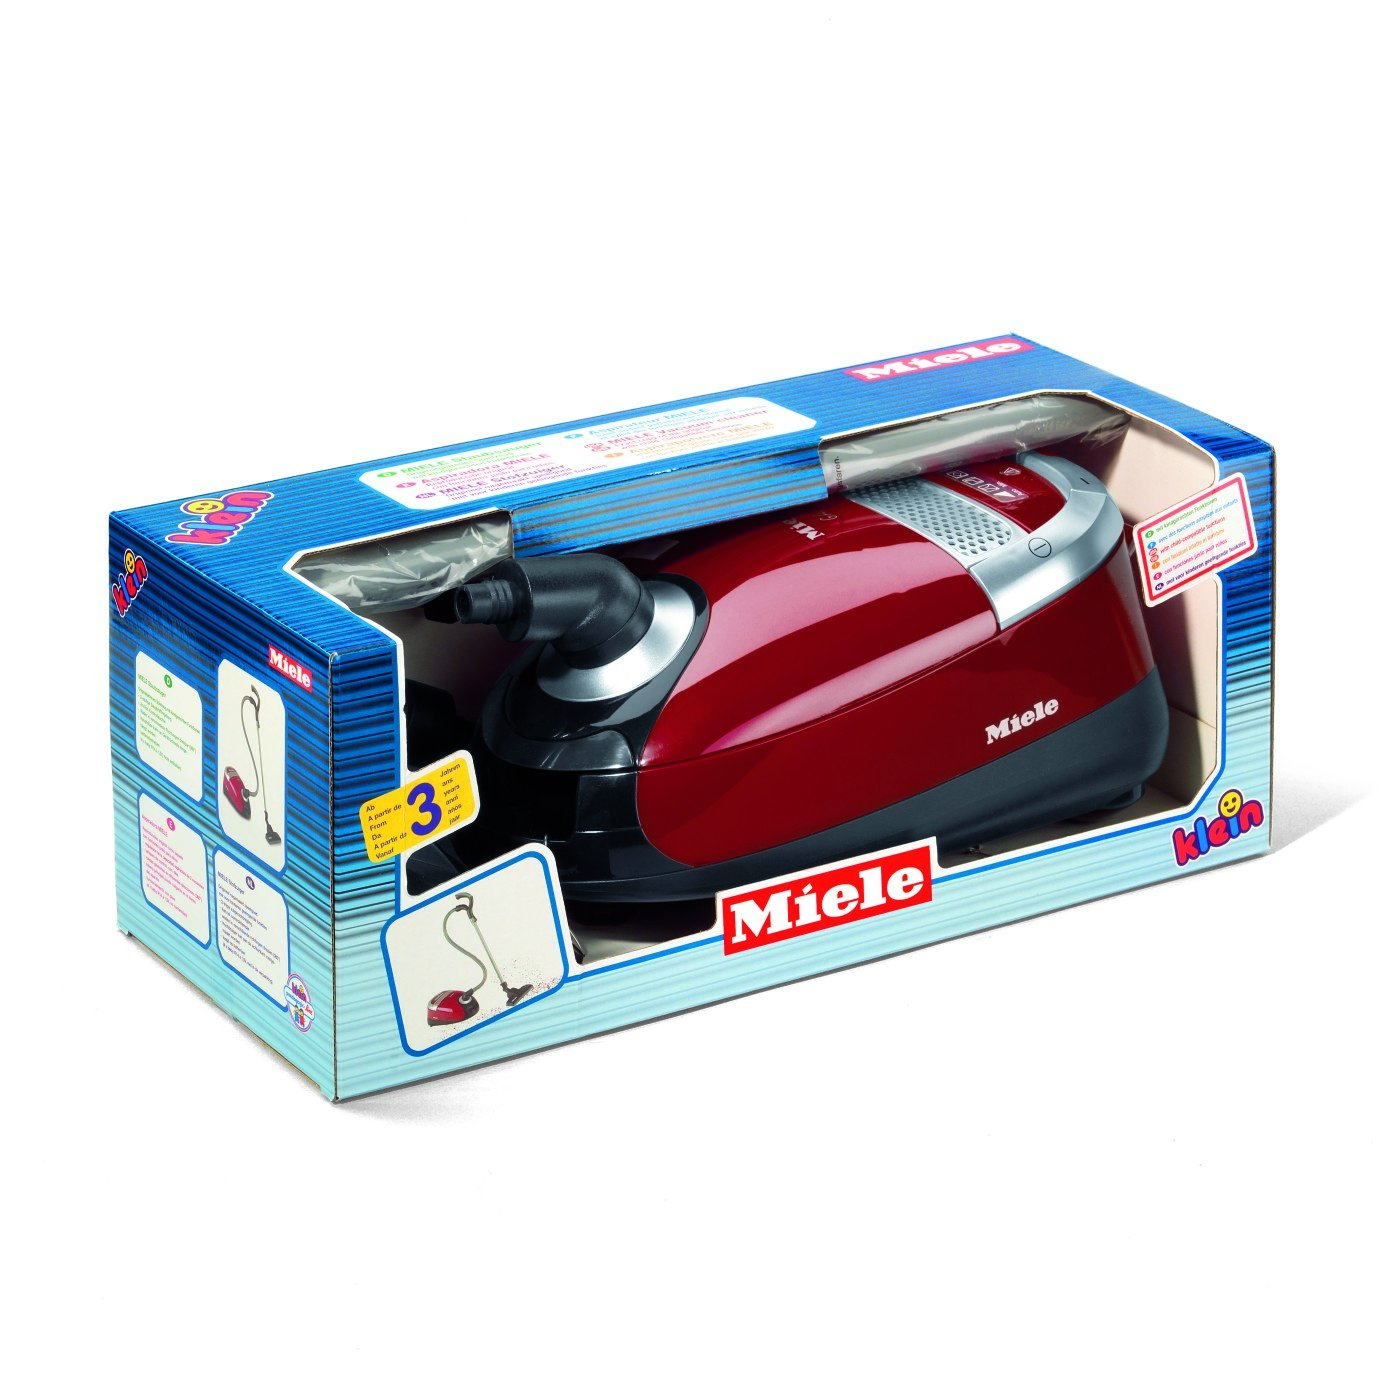 Miele Toy Canister Vacuum